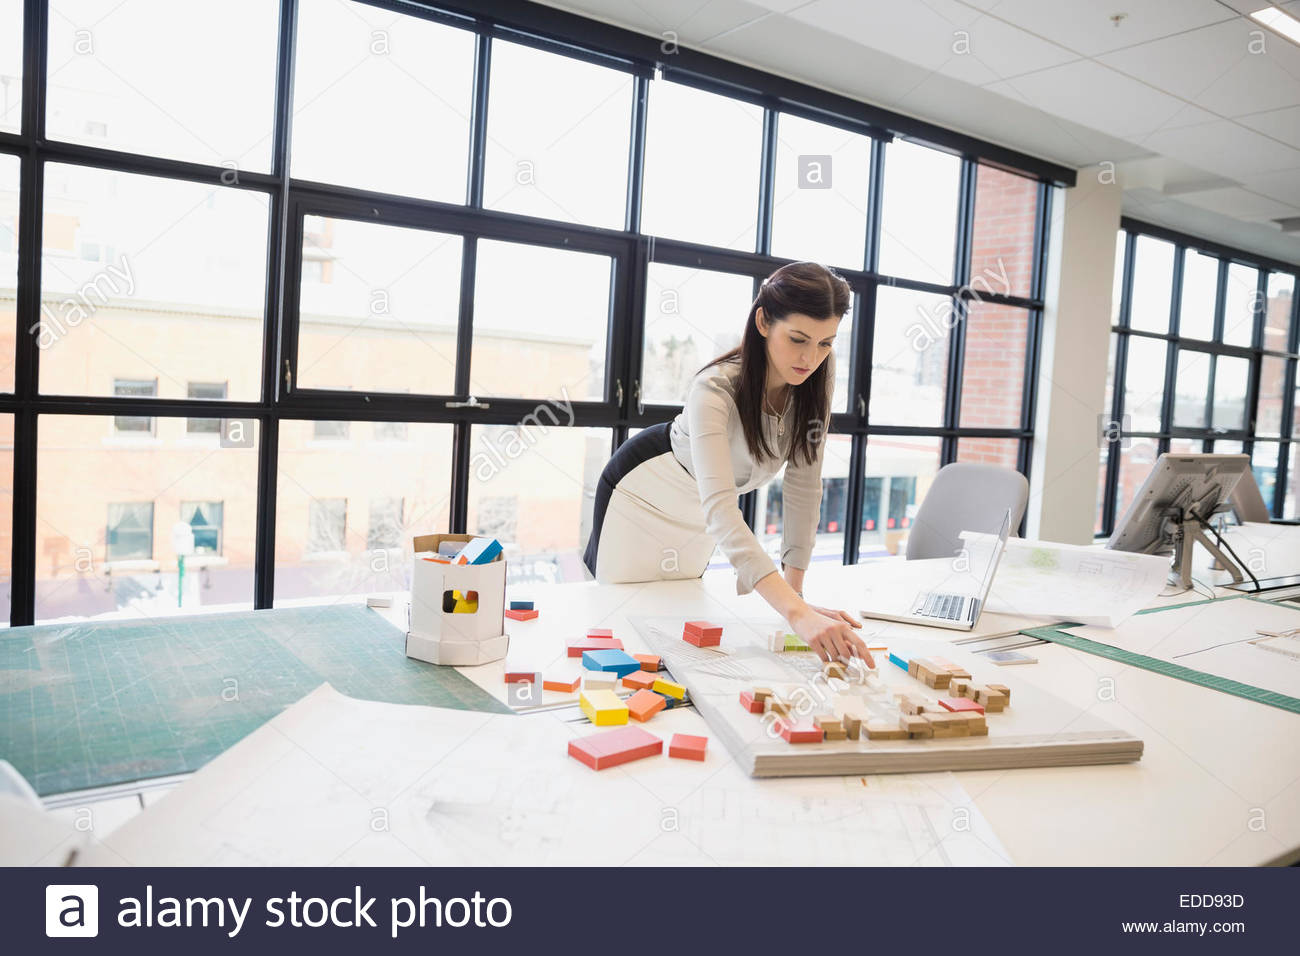 Architect working at model in office - Stock Image